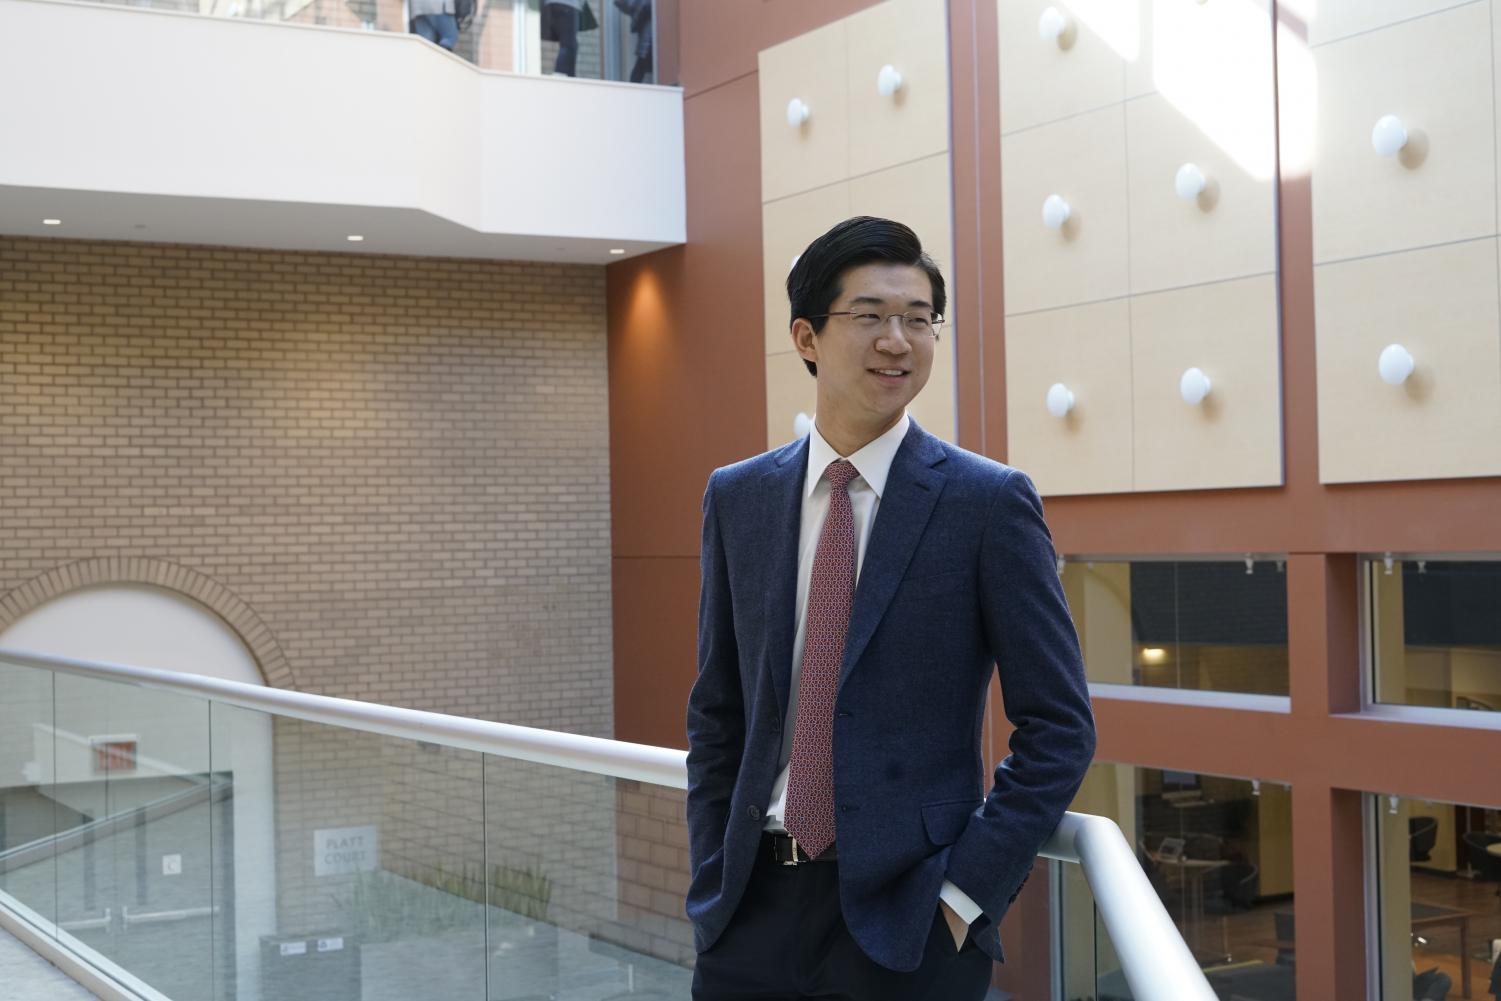 Tony Yancheng Li is an international finance major, has had numerous internships and loves choir.